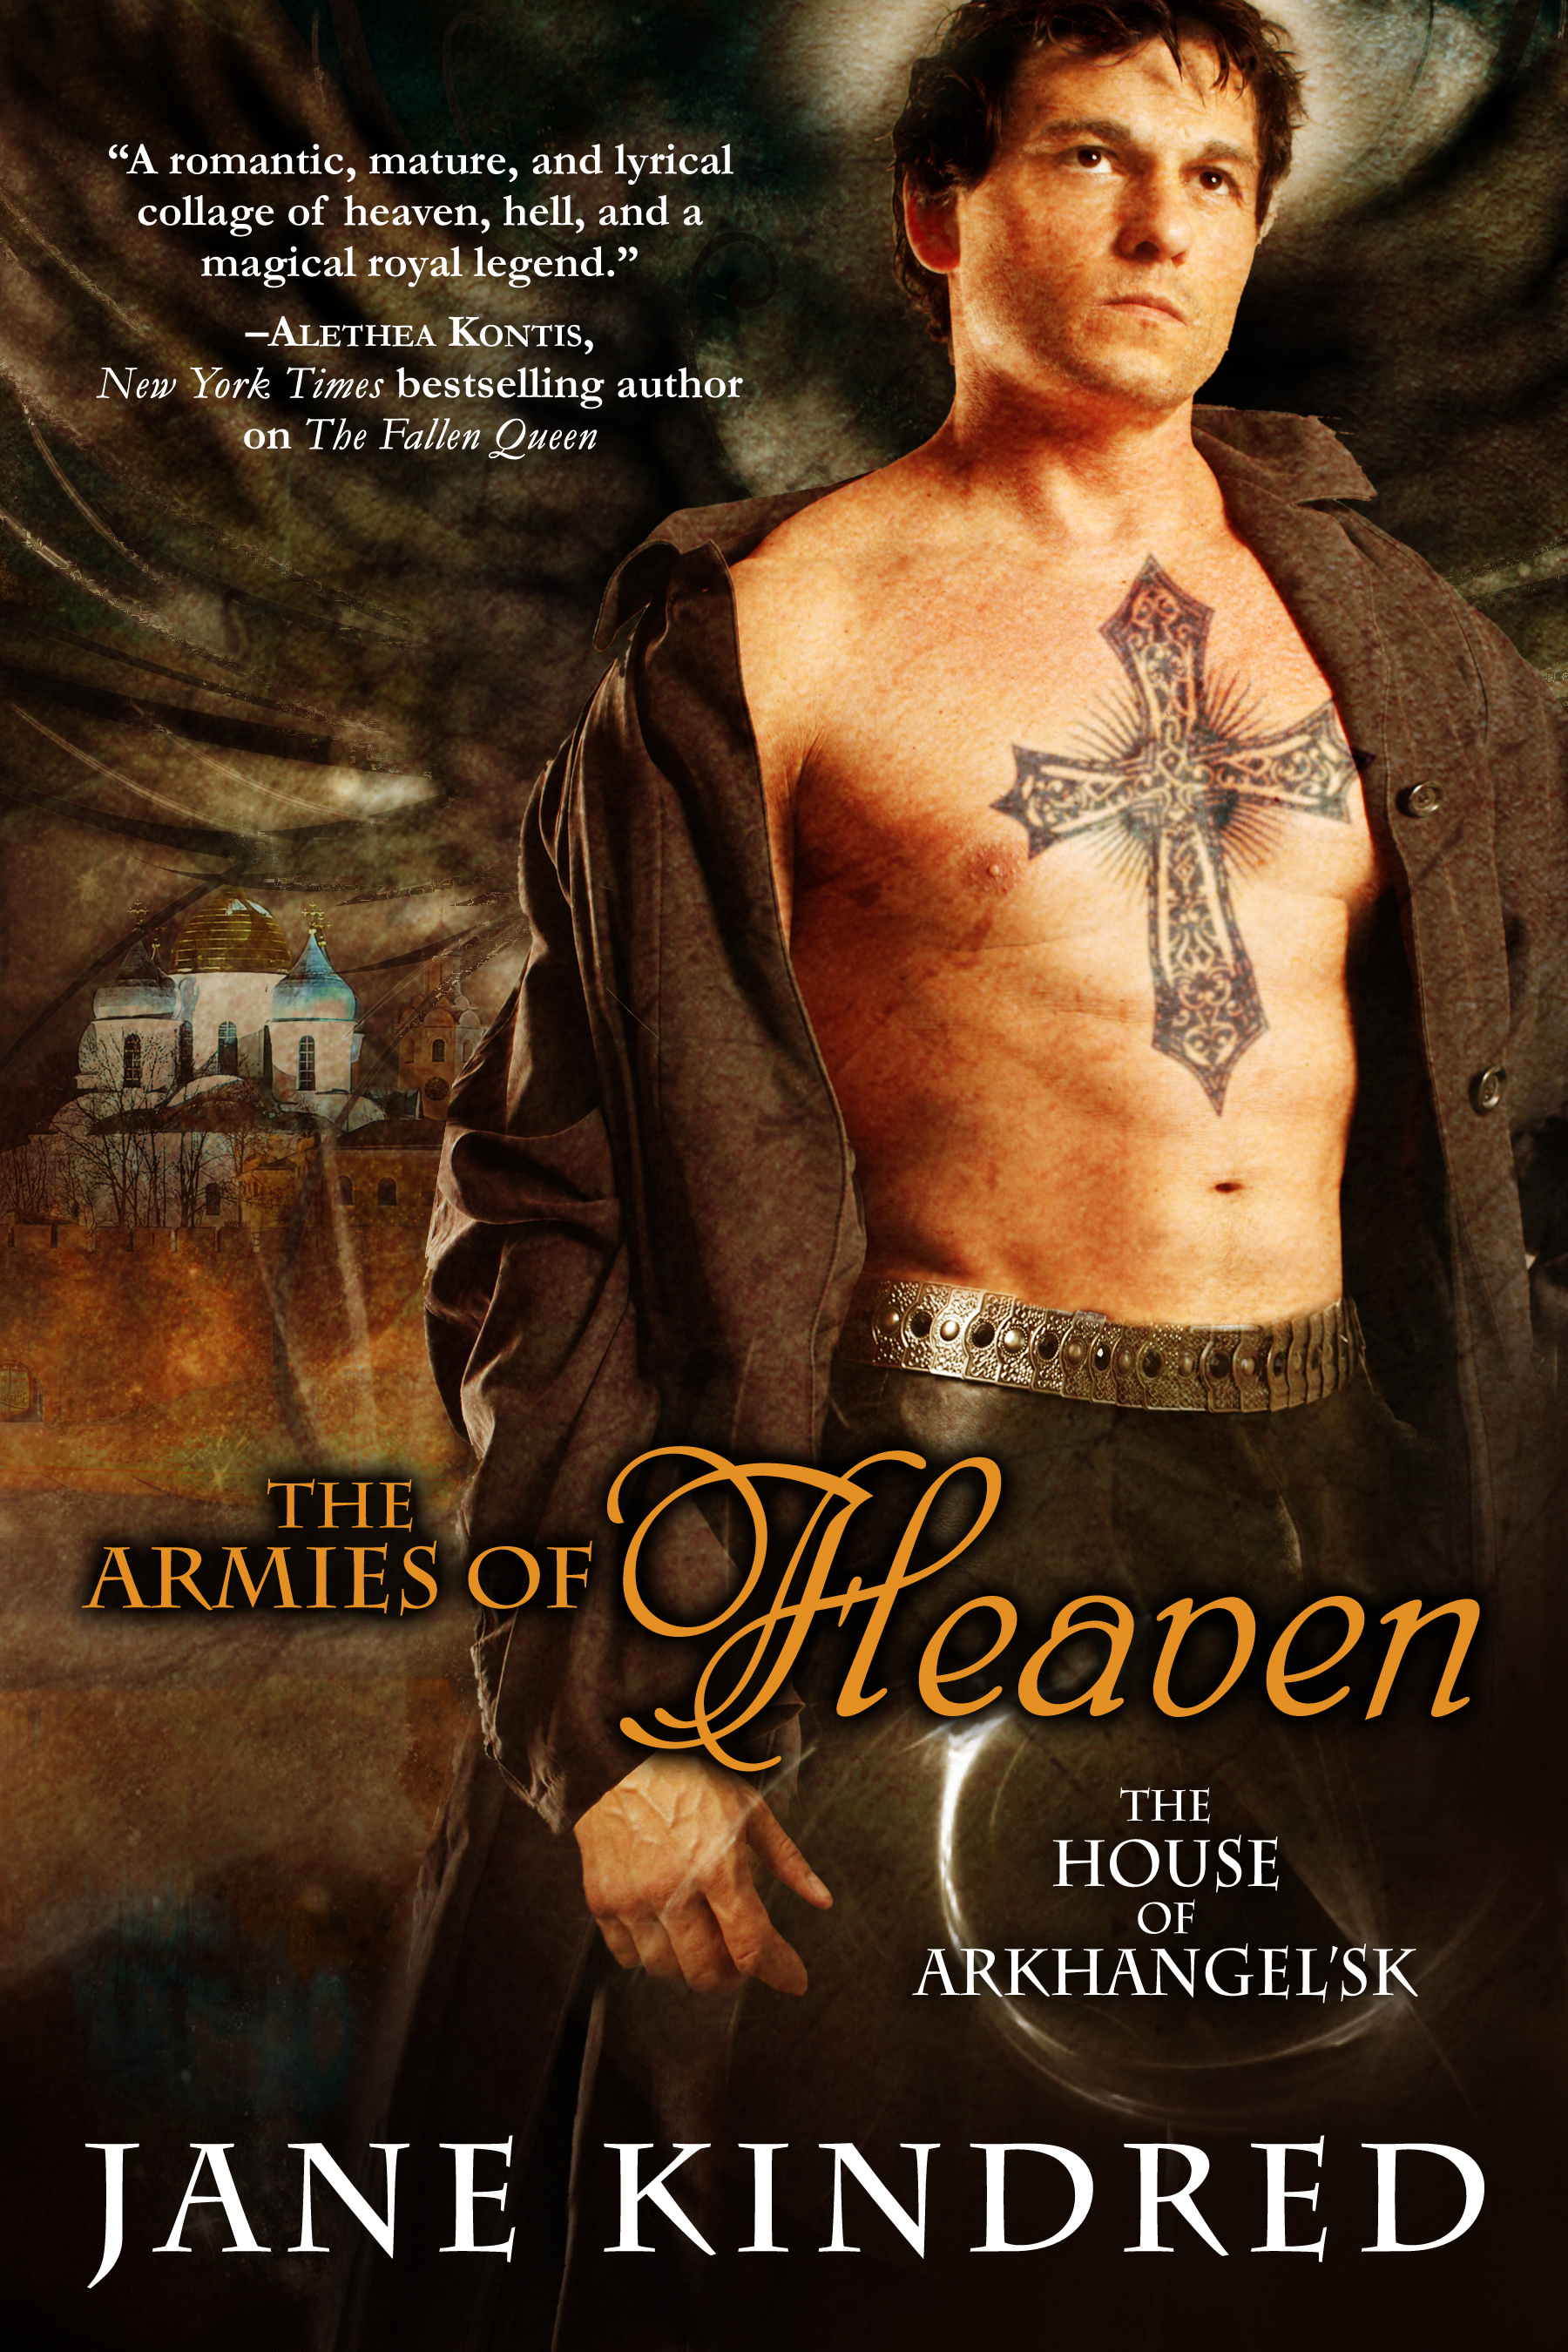 The Armies of Heaven by Jane Kindred